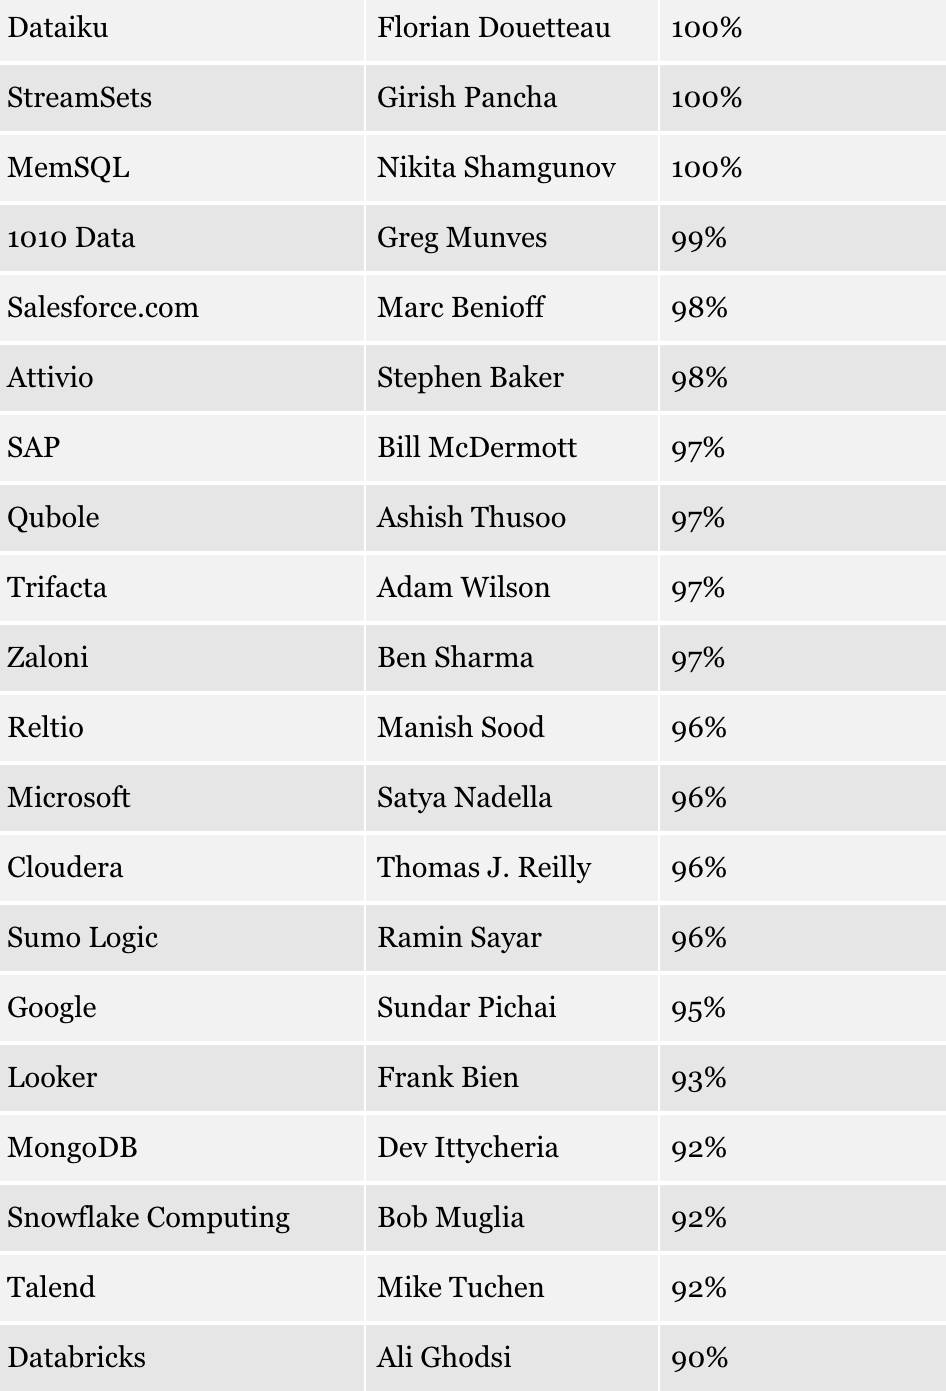 """Source - Forbes article """"The Best Big Data Companies And CEOs To Work For In 2018 Based On Glassdoor"""" author Louis Columbus, May 2018"""